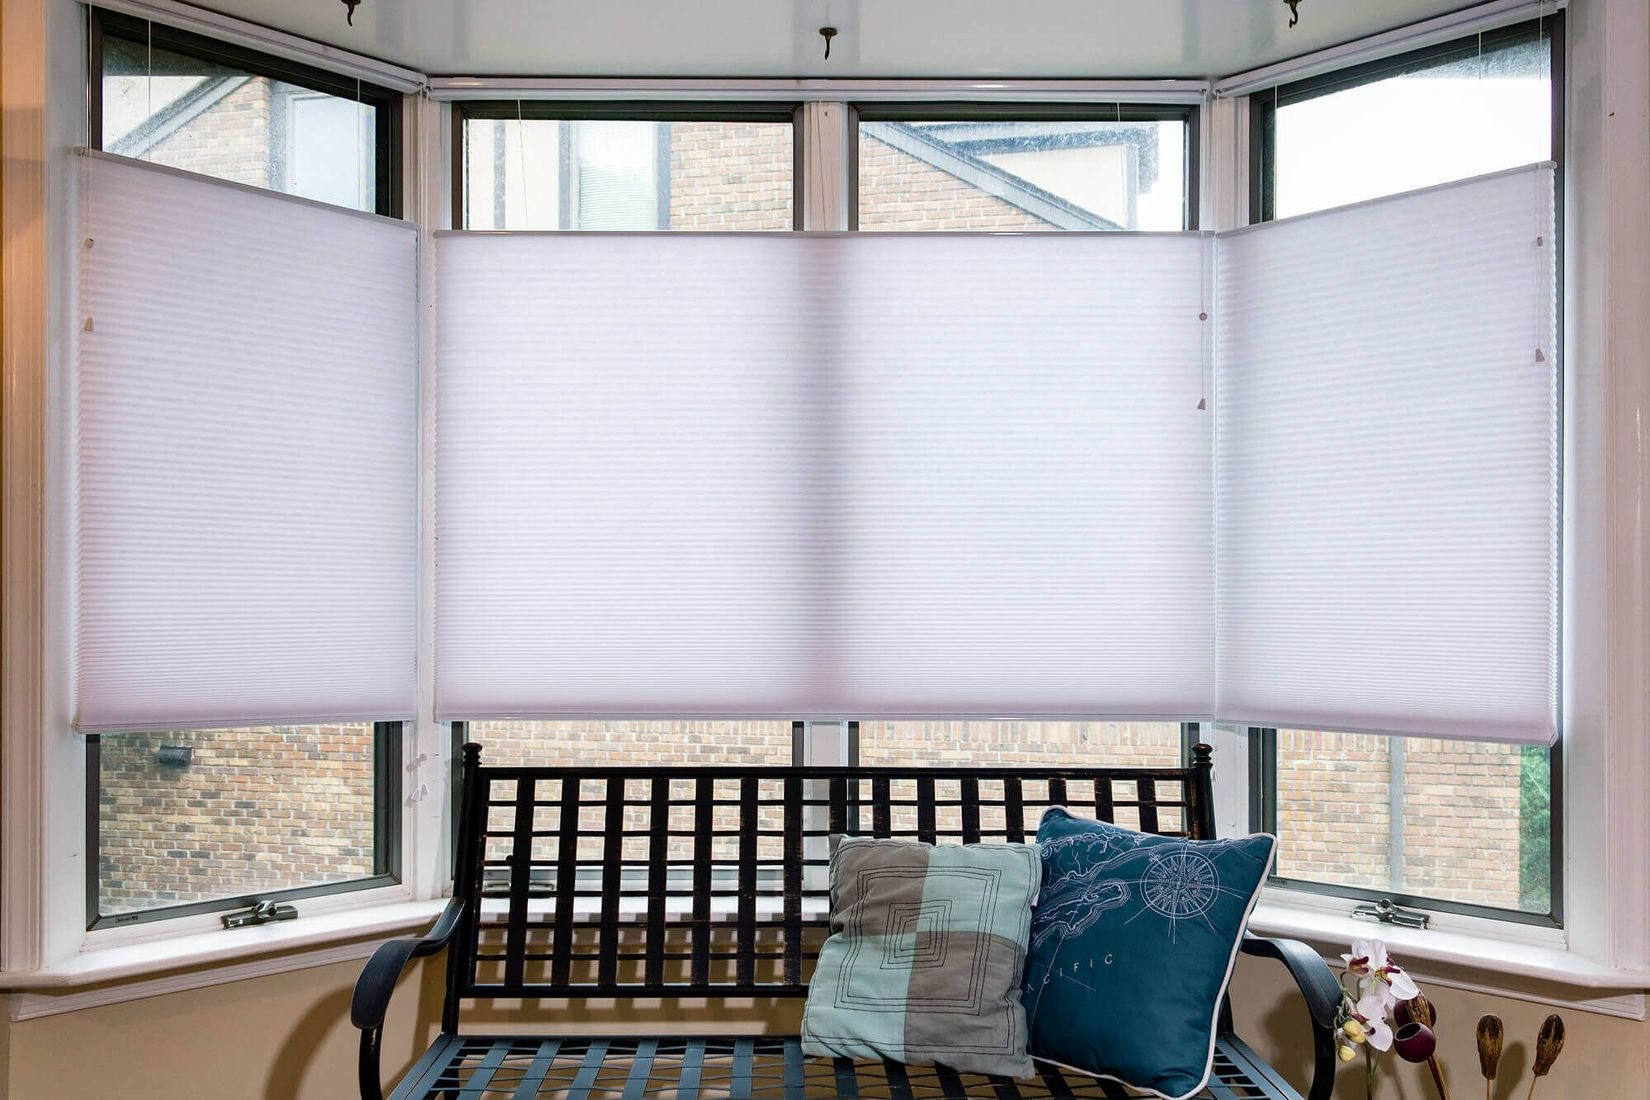 honeycomb shades prestige cellular shades top down bottom up for bay windows looks sleek QRXILTK